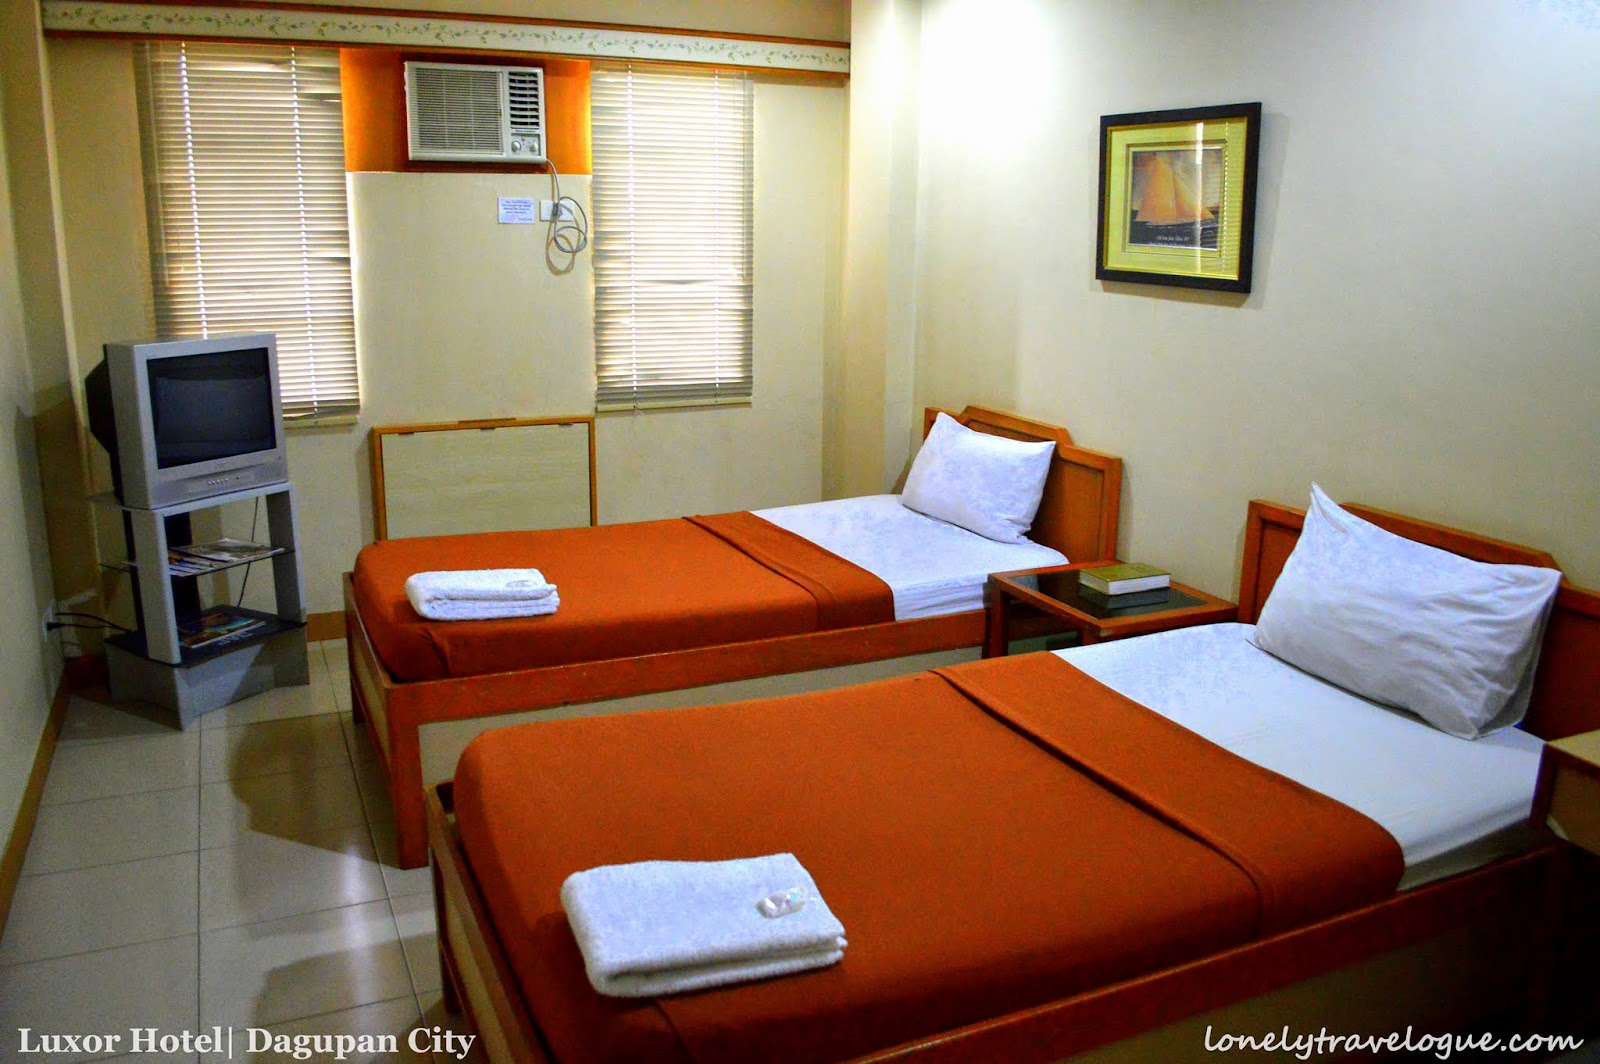 Lonely Travelogue: WHERE TO STAY IN DAGUPAN: Luxor Hotel - Your ...